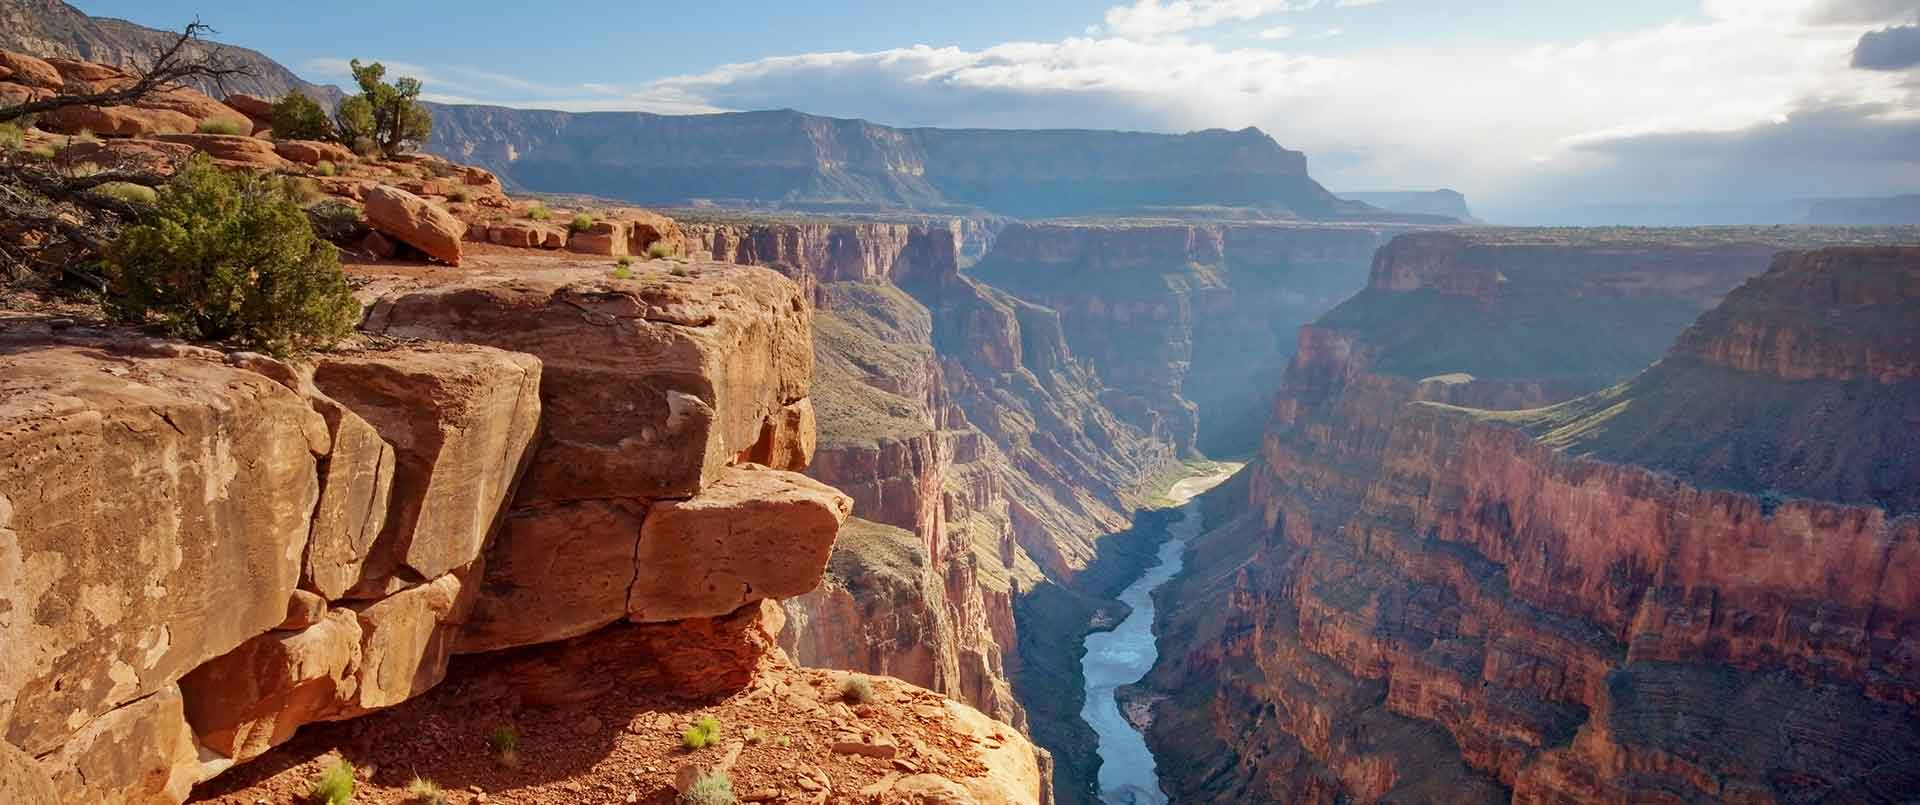 Charity: Grand Canyon Trek Open Challenge